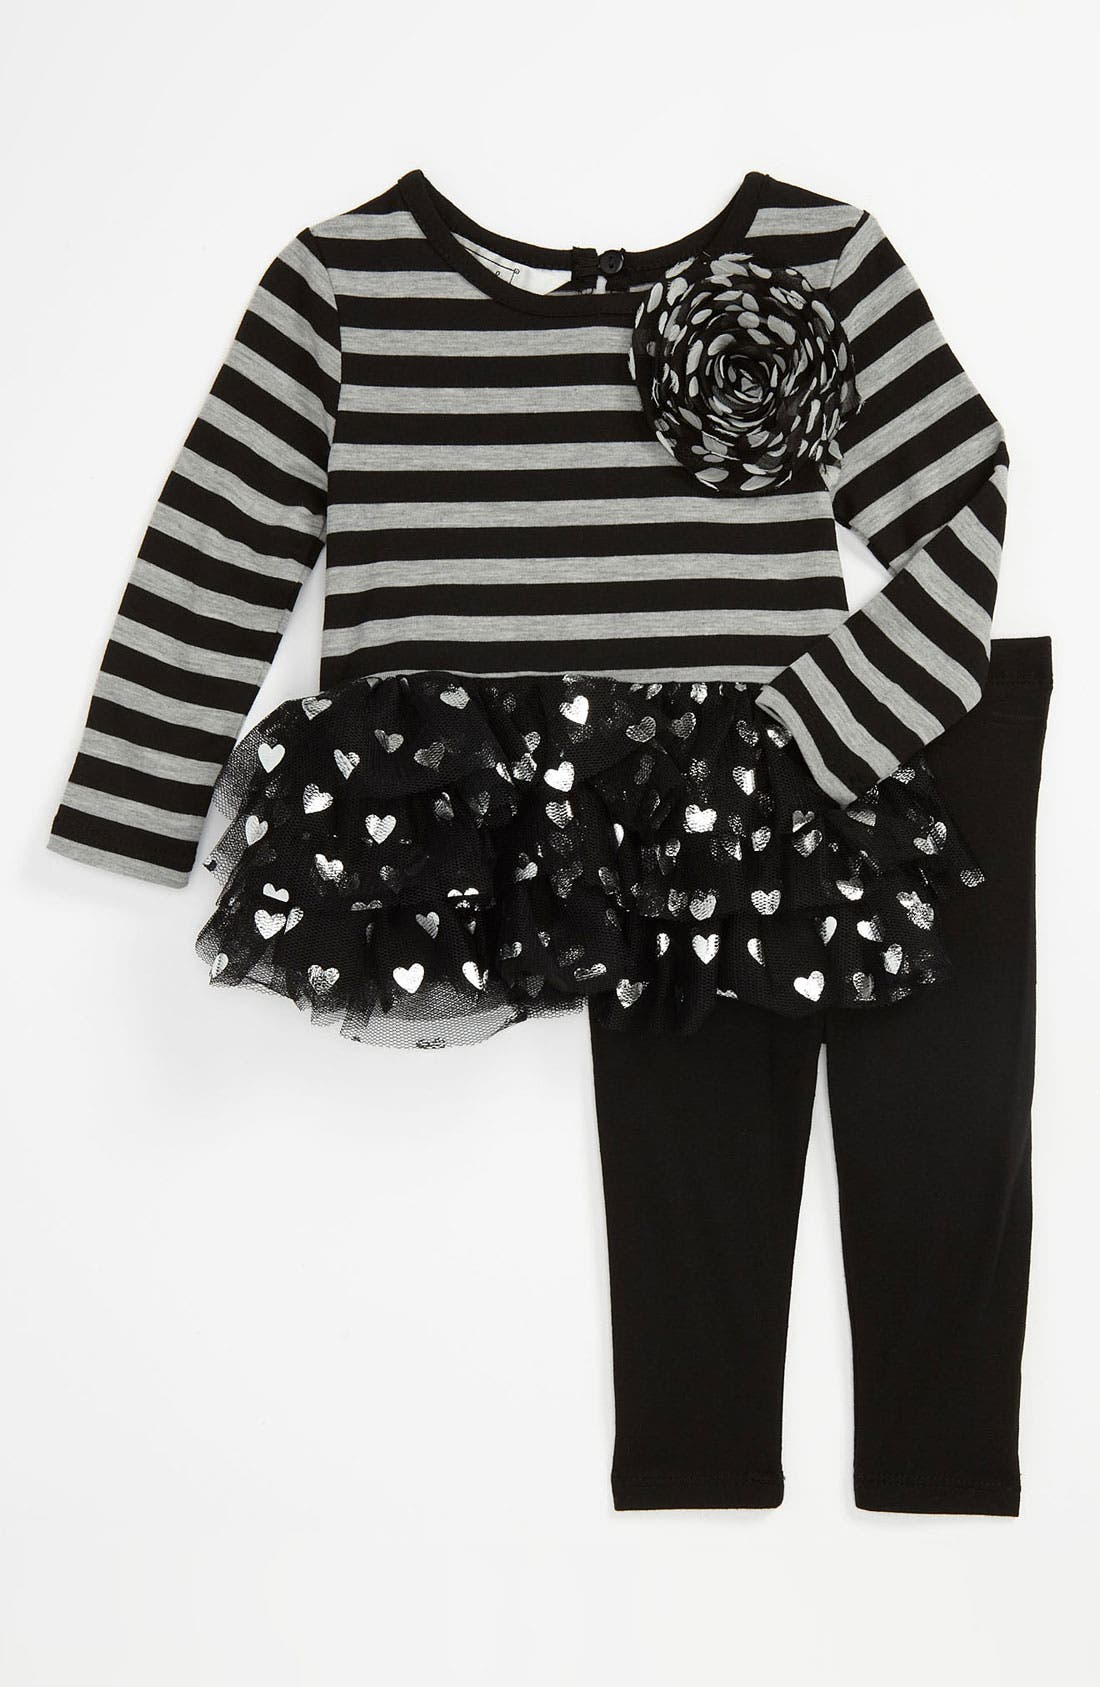 Alternate Image 1 Selected - Pippa & Julie Stripe Top & Leggings (Infant)